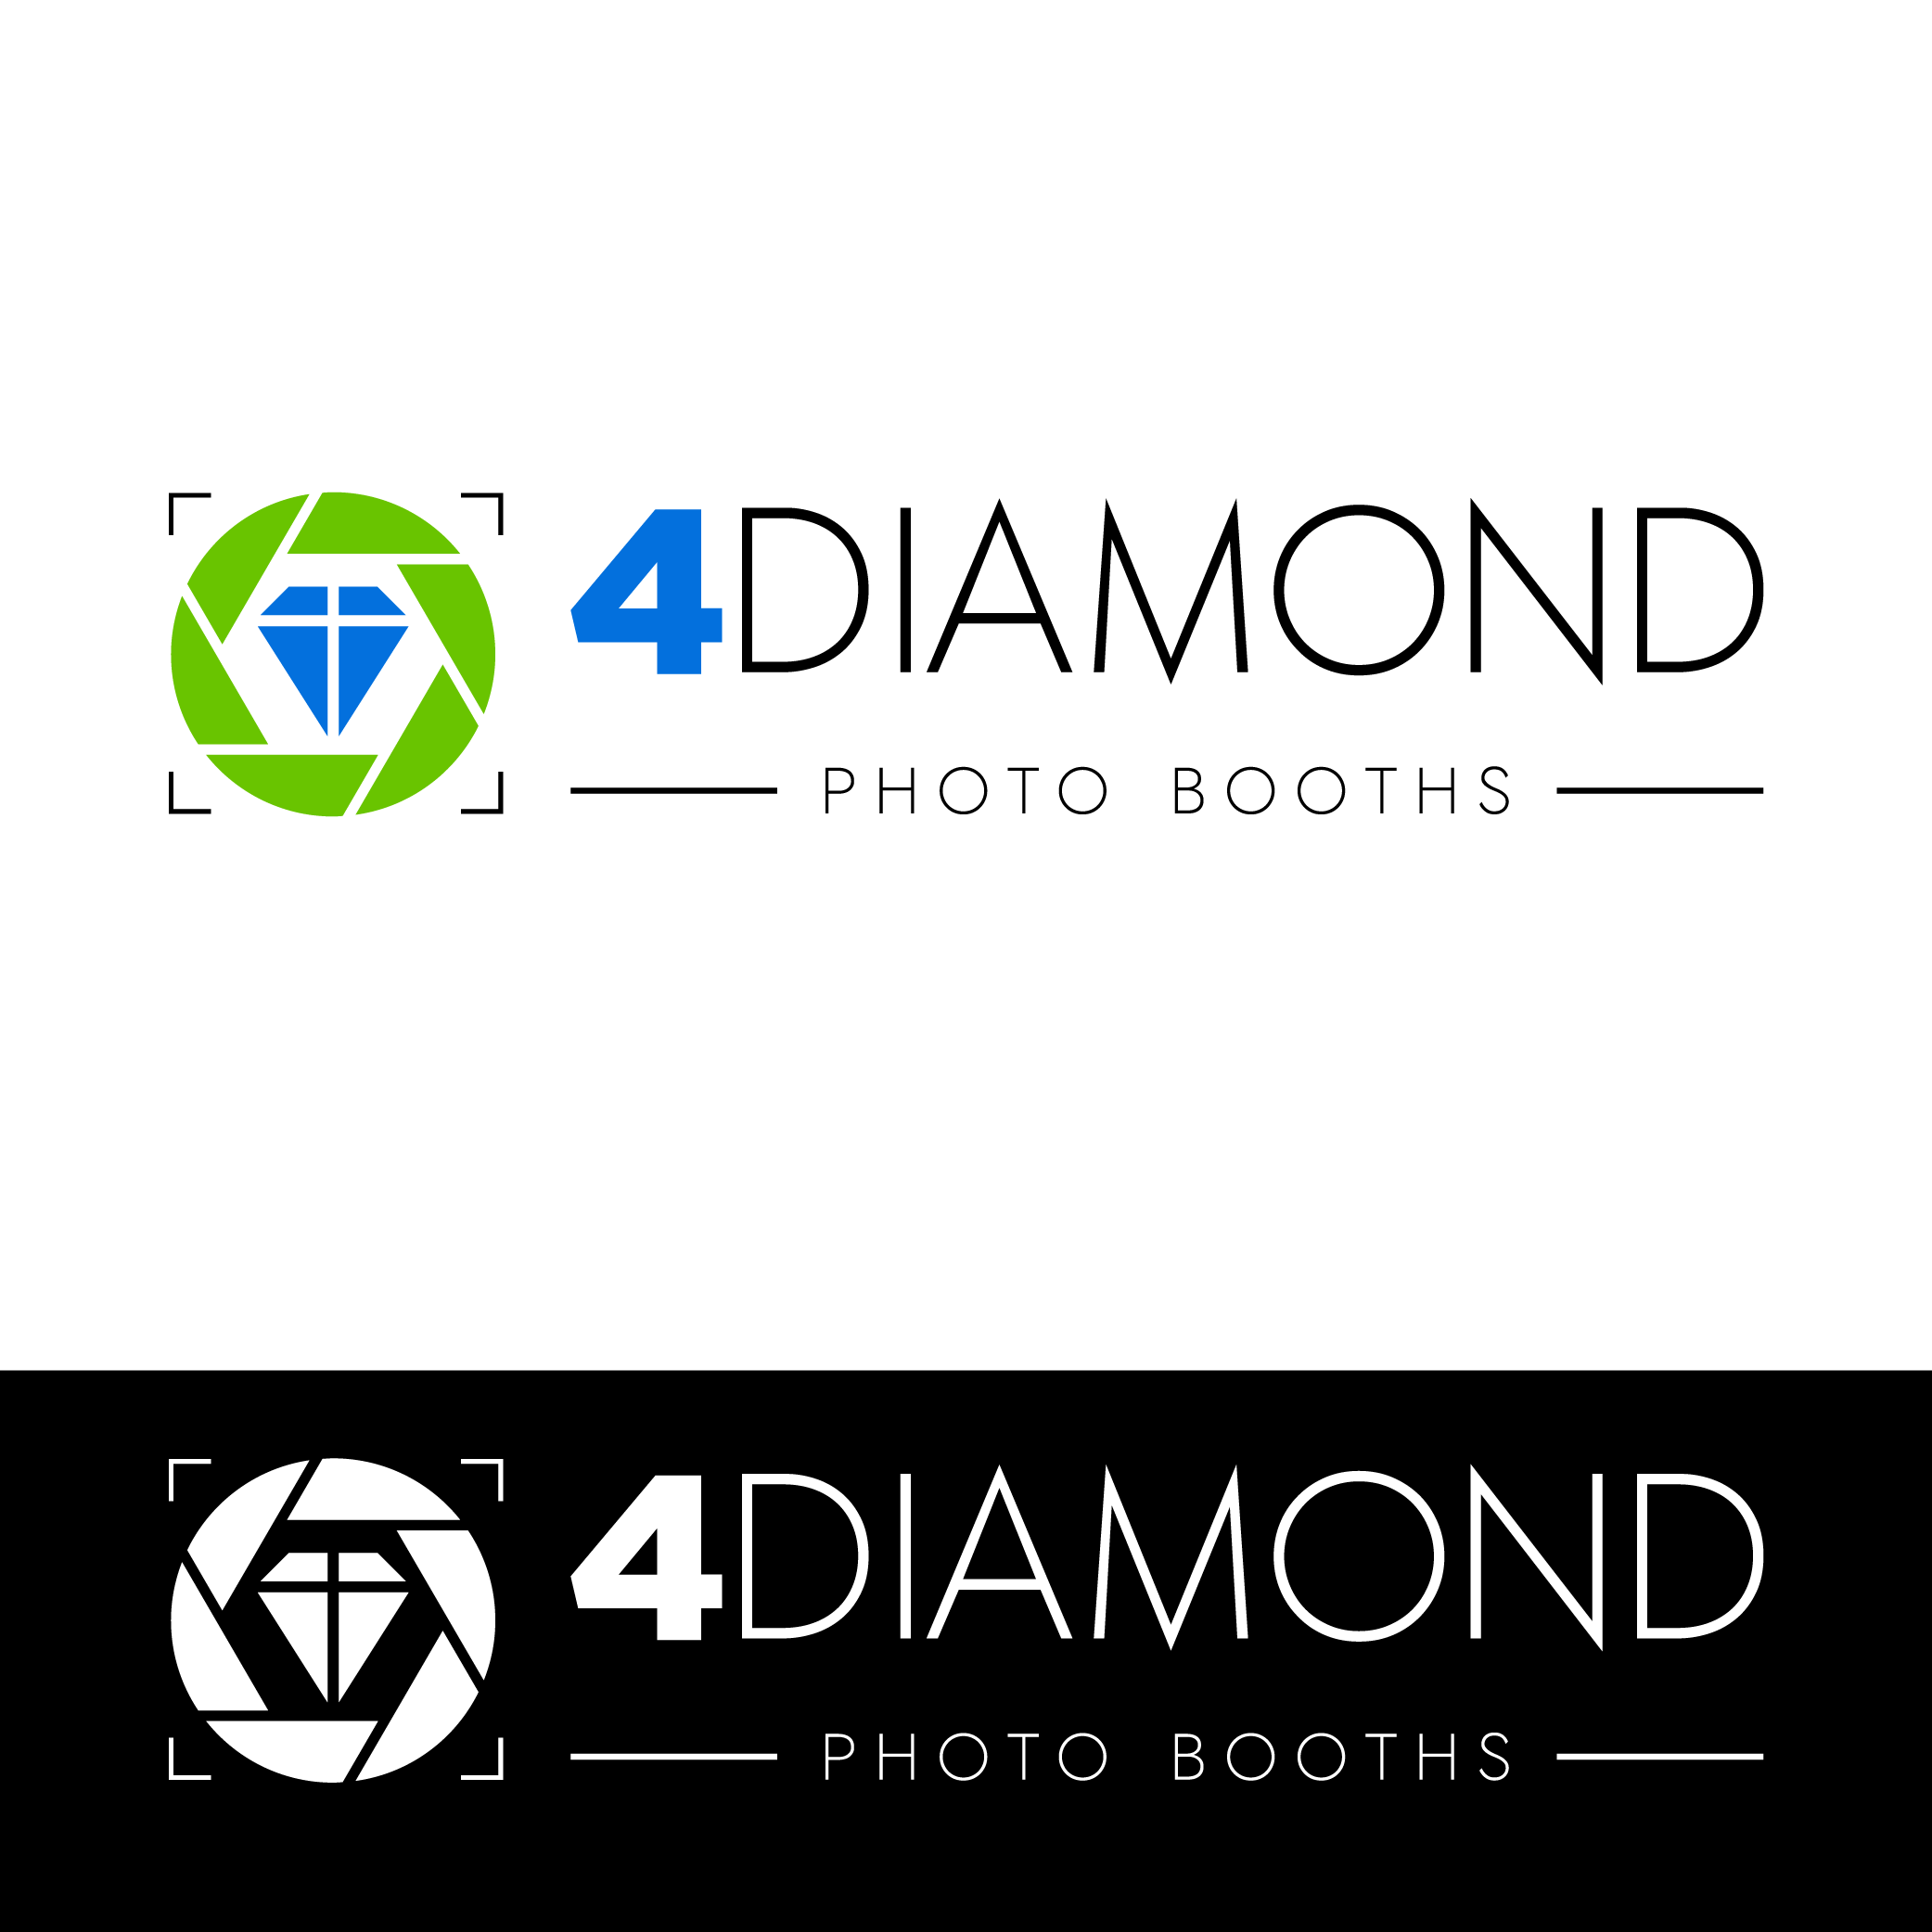 Logo Design by Private User - Entry No. 9 in the Logo Design Contest Creative Logo Design for 4 Diamond Photo Booths.